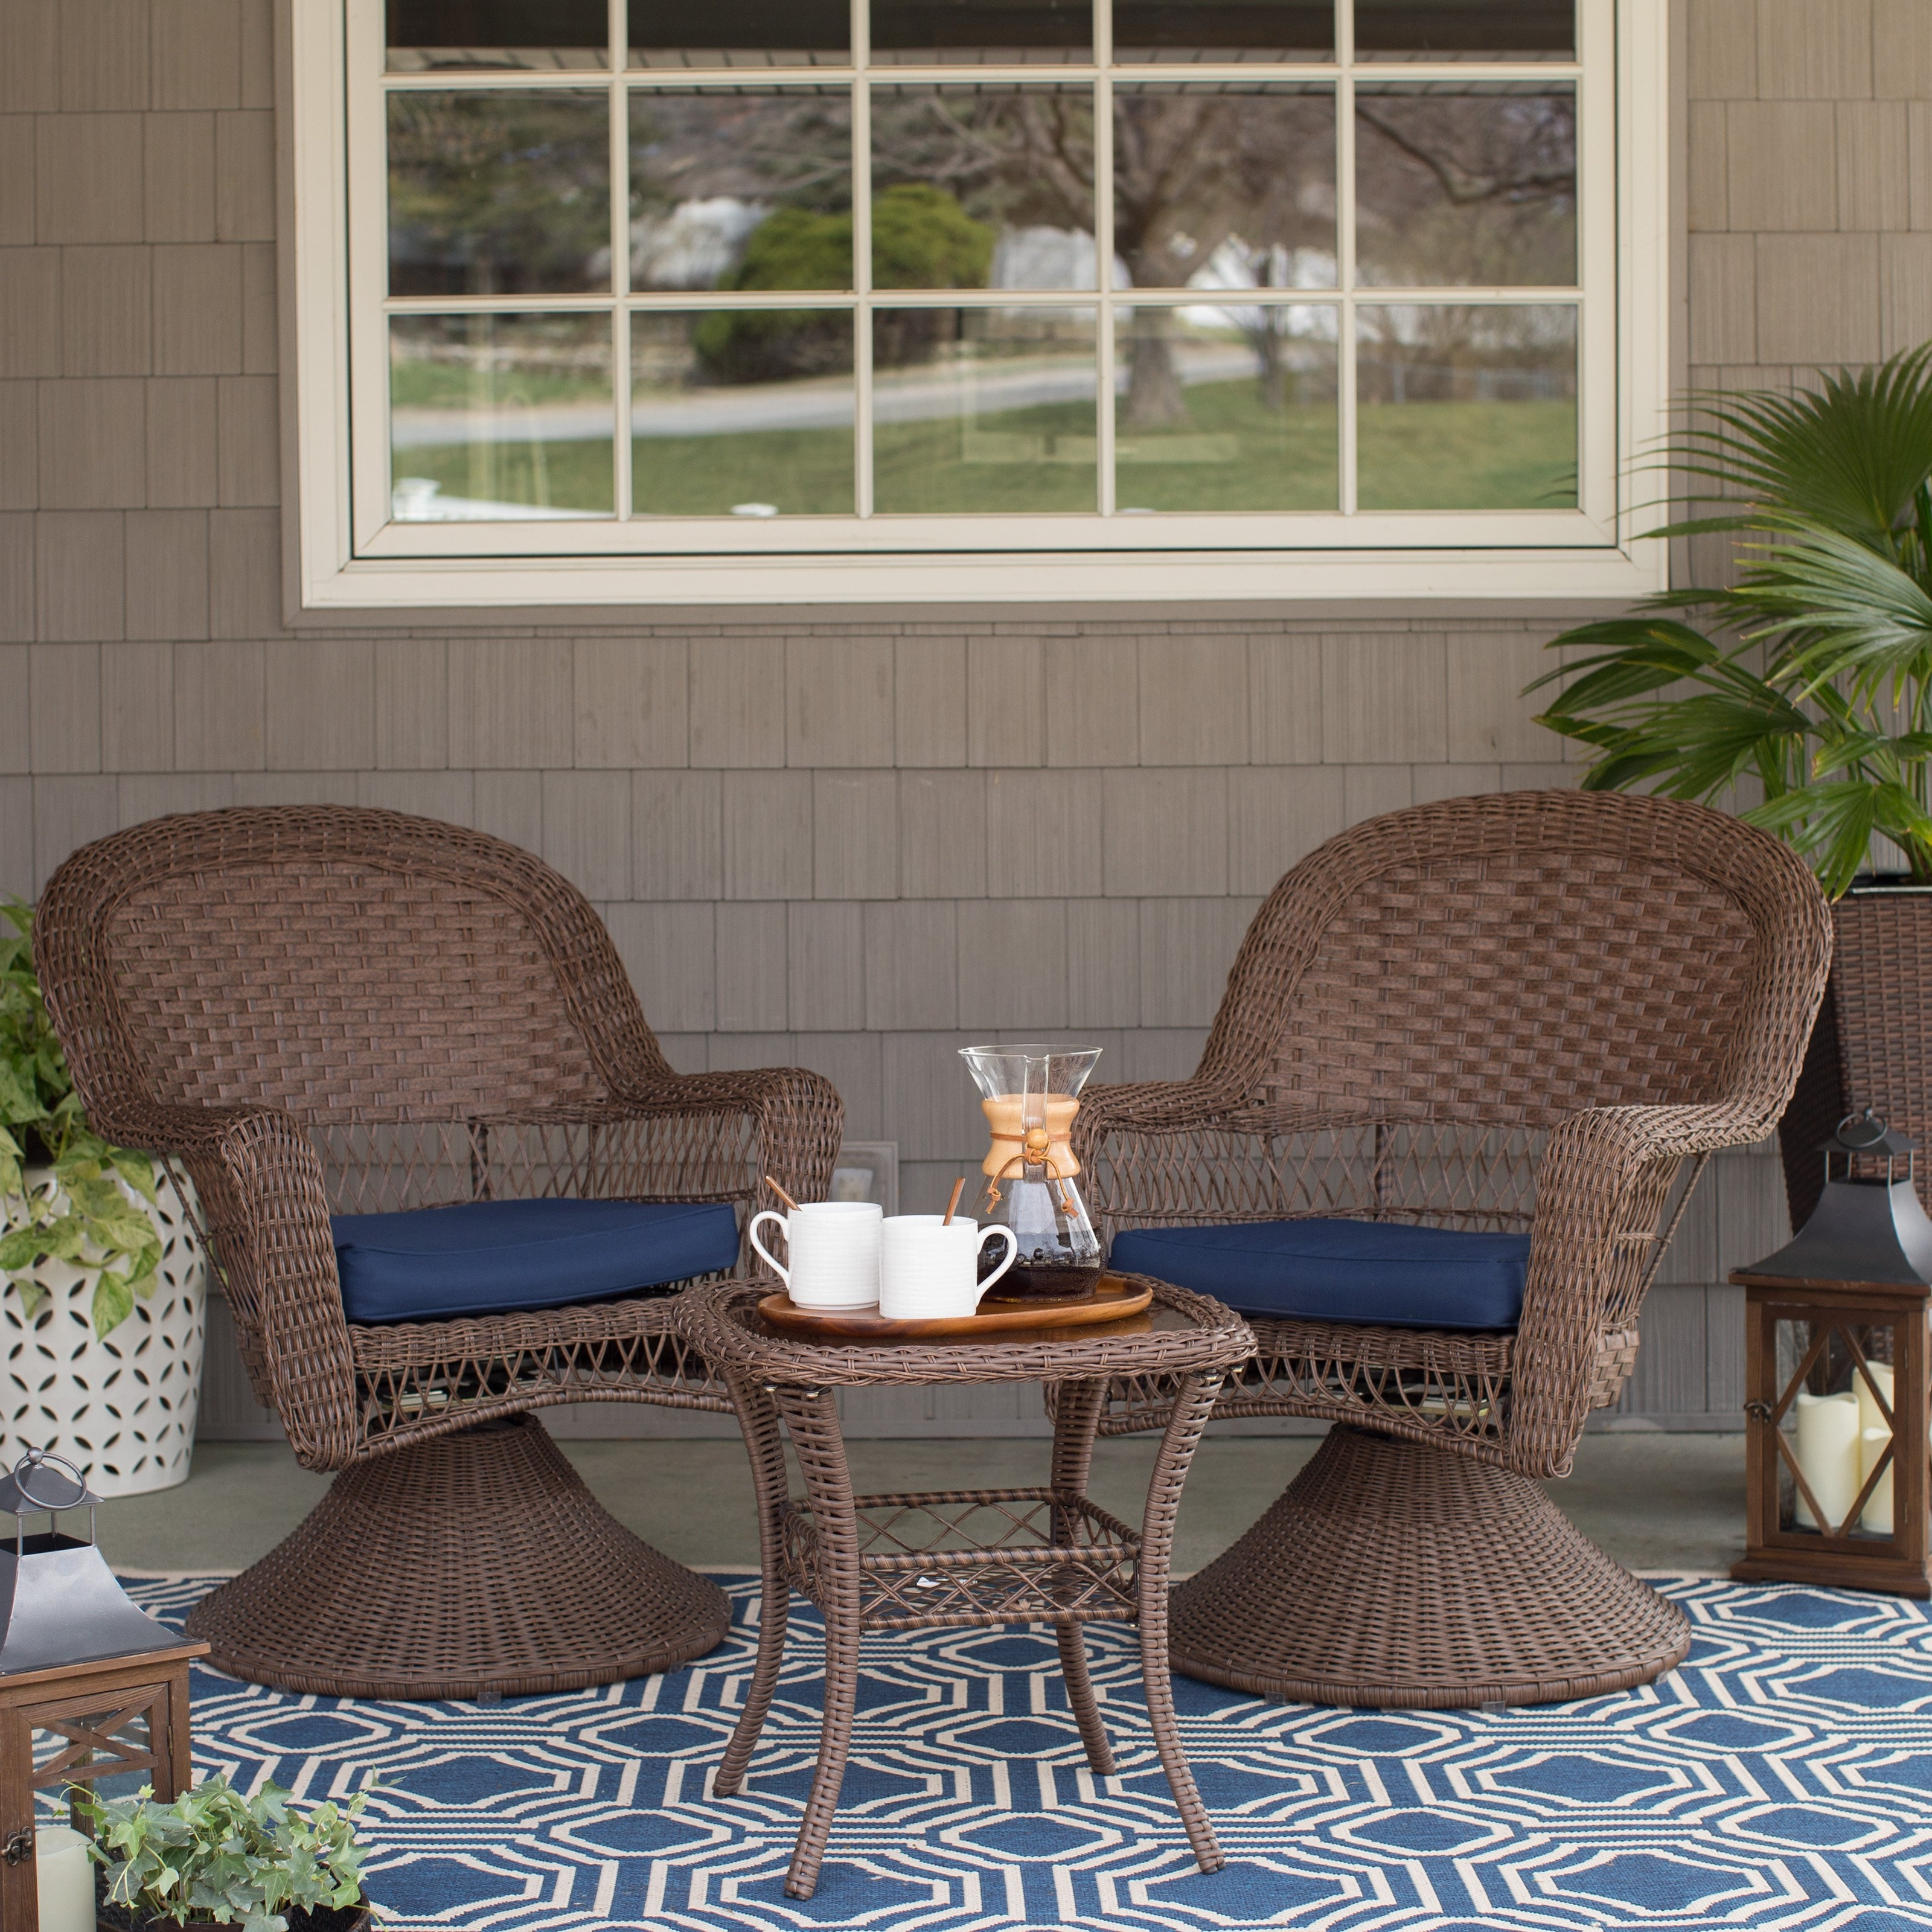 Patio Conversation Sets With Swivel Chairs Intended For Preferred Coral Coast 3 Piece Wicker Swivel Chat Set – Walmart (View 16 of 20)